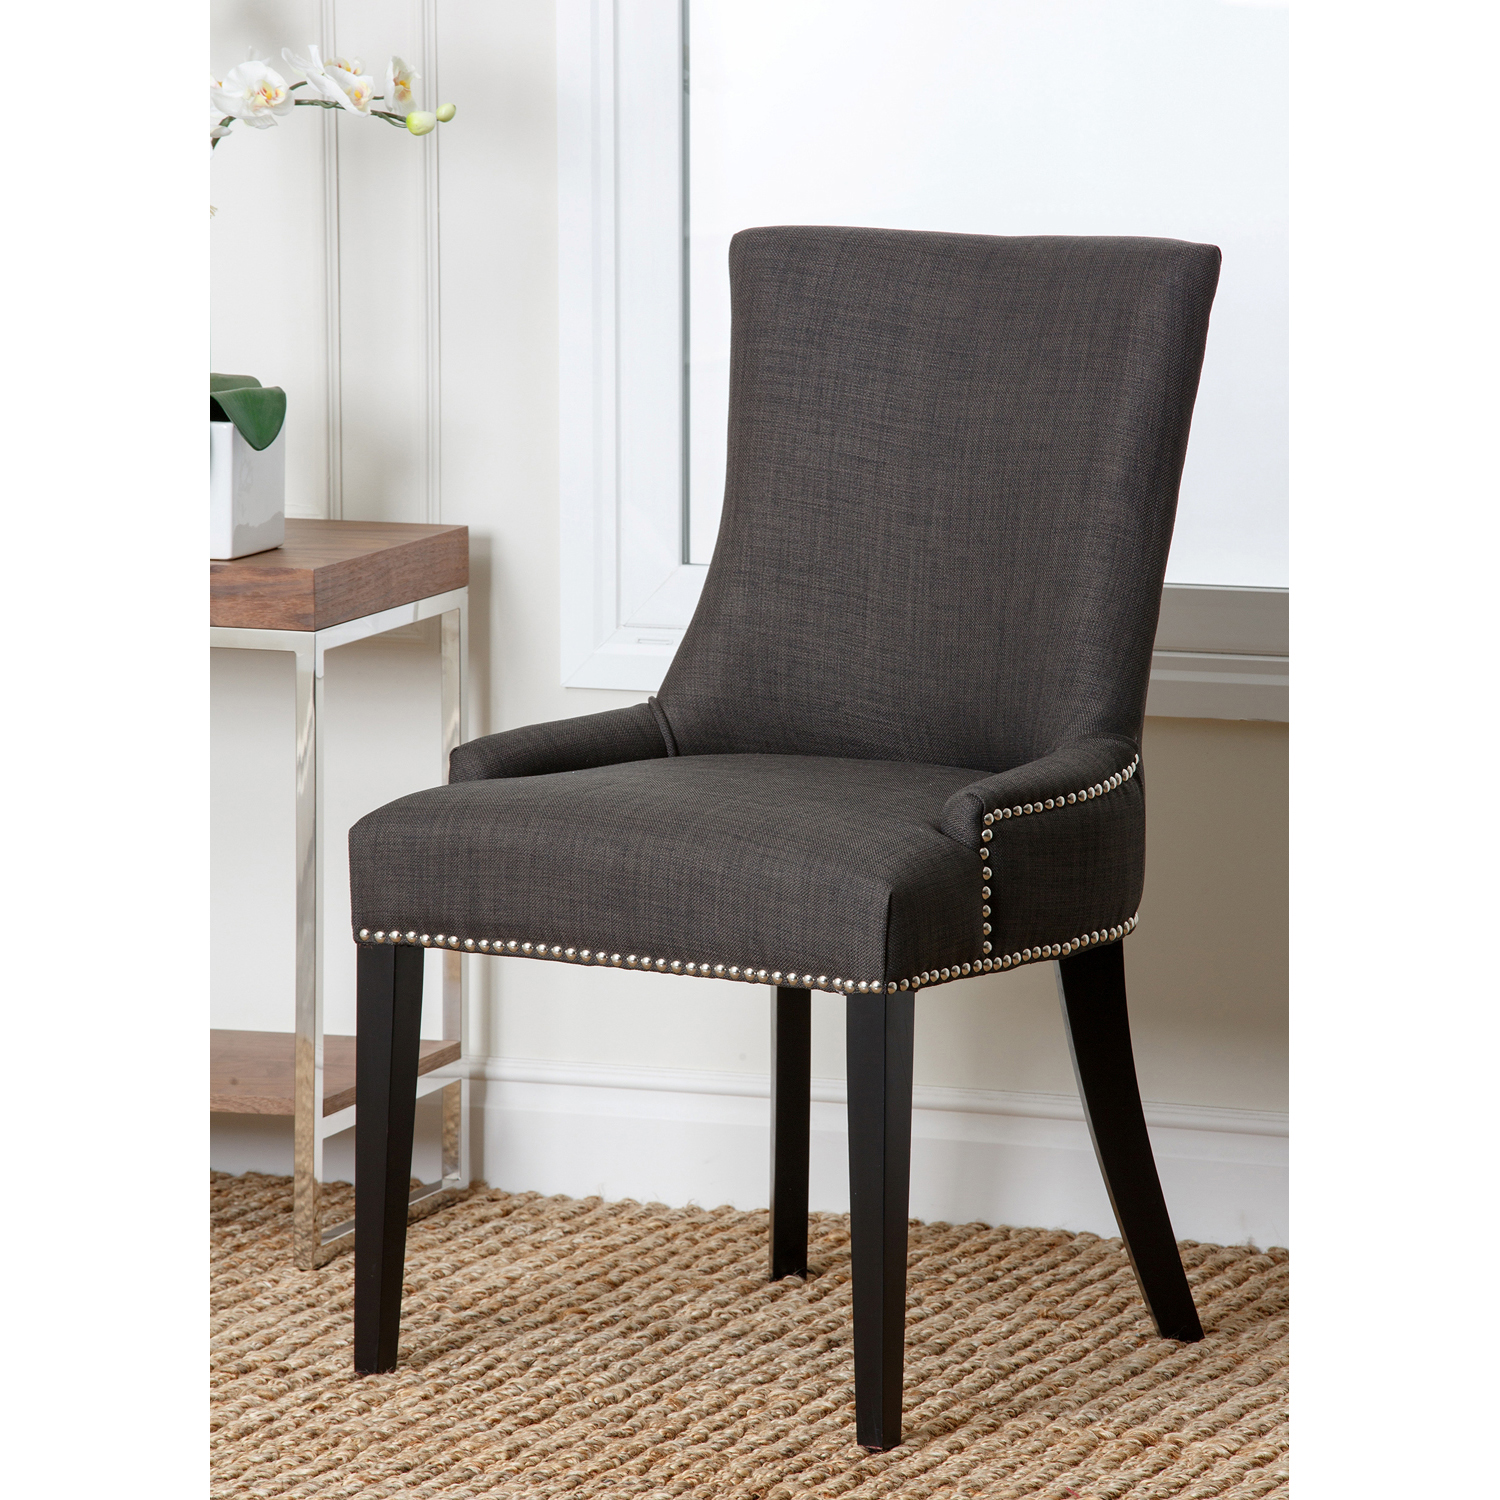 Palma Gray Upholstered Dining Chair